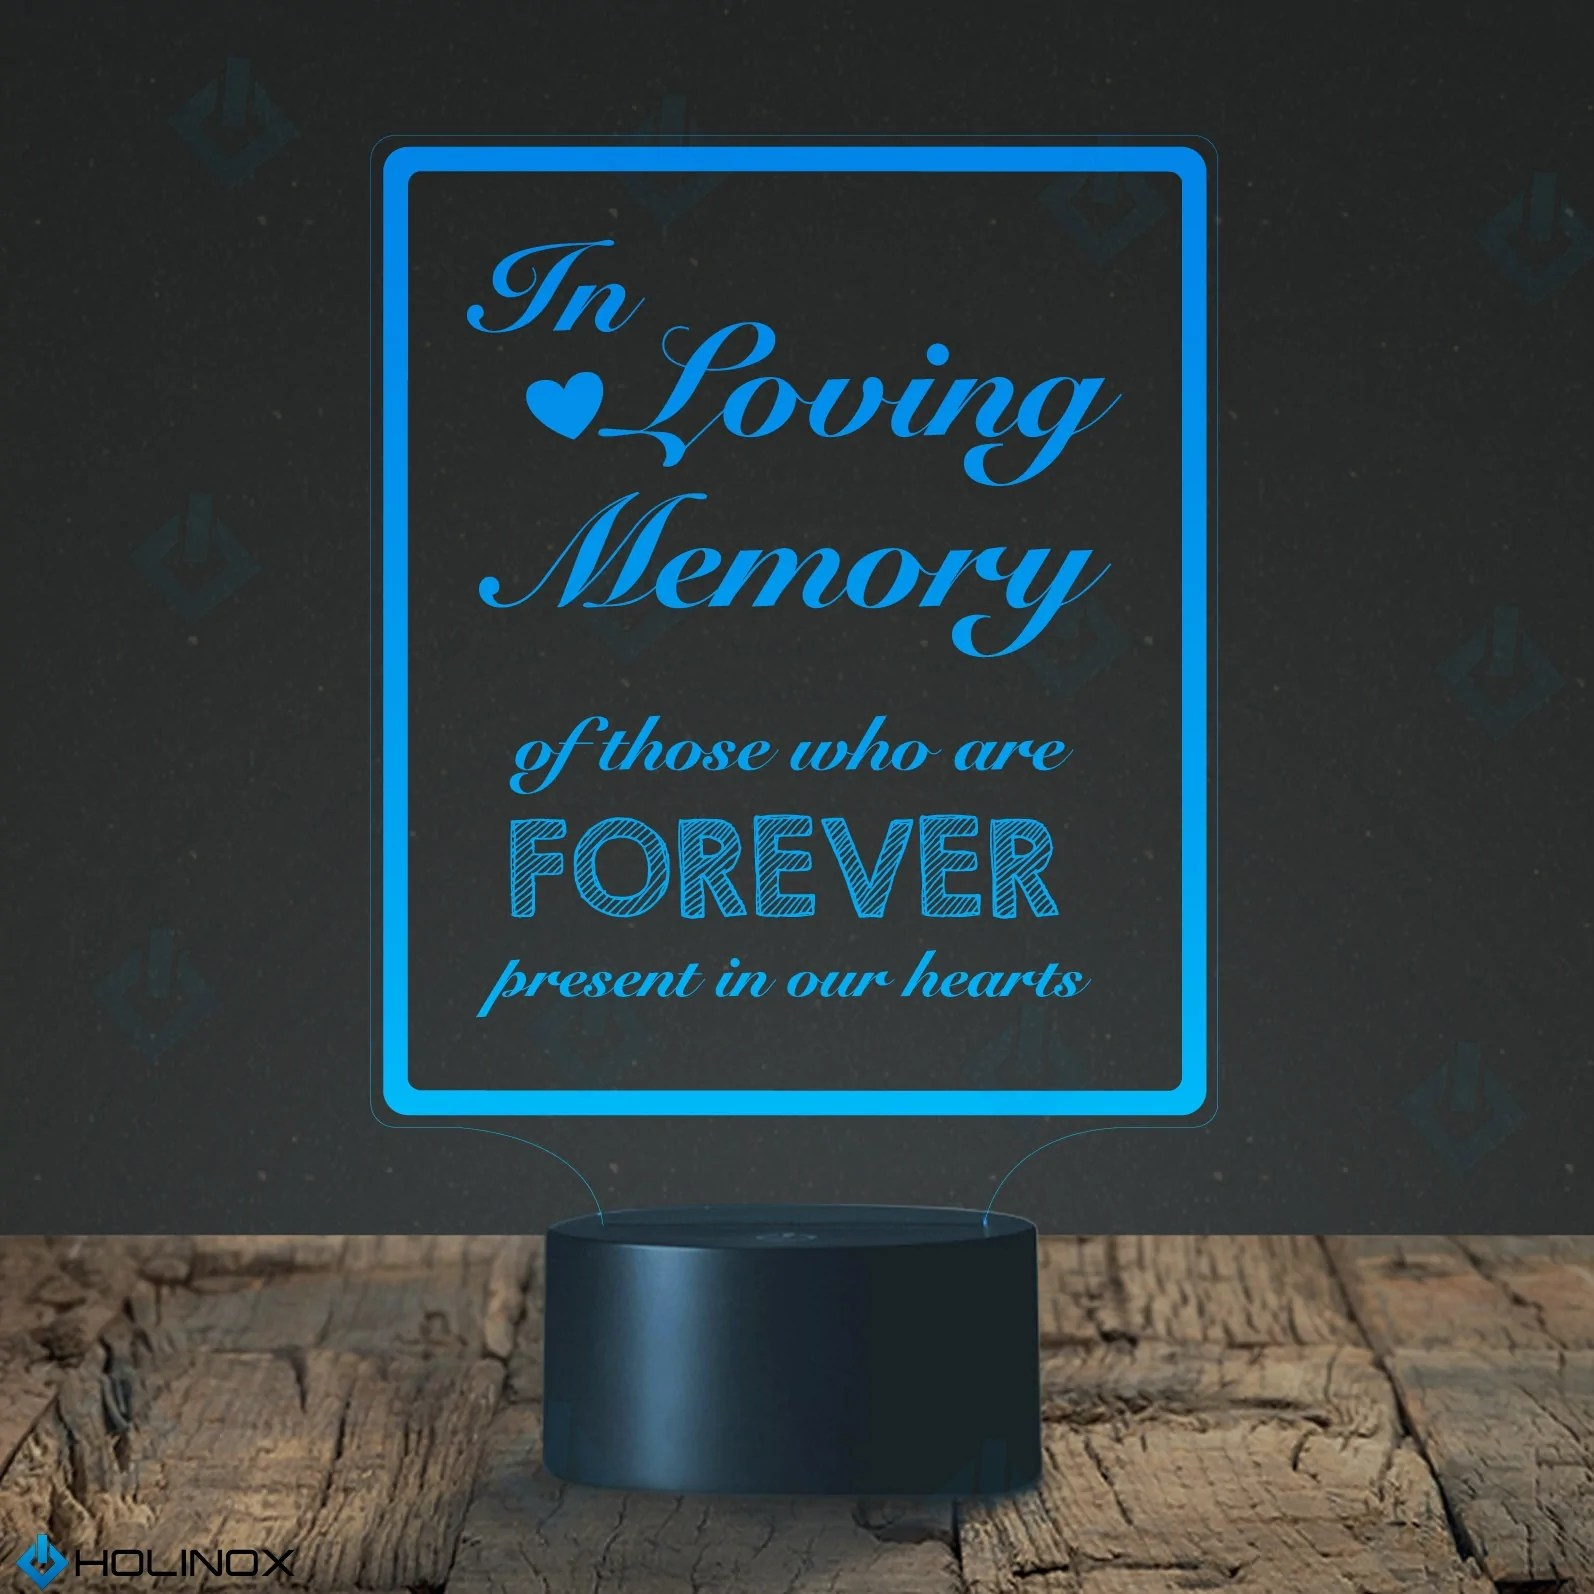 medium resolution of in loving memory led lamp with usb connector calligraphy text decal holinox